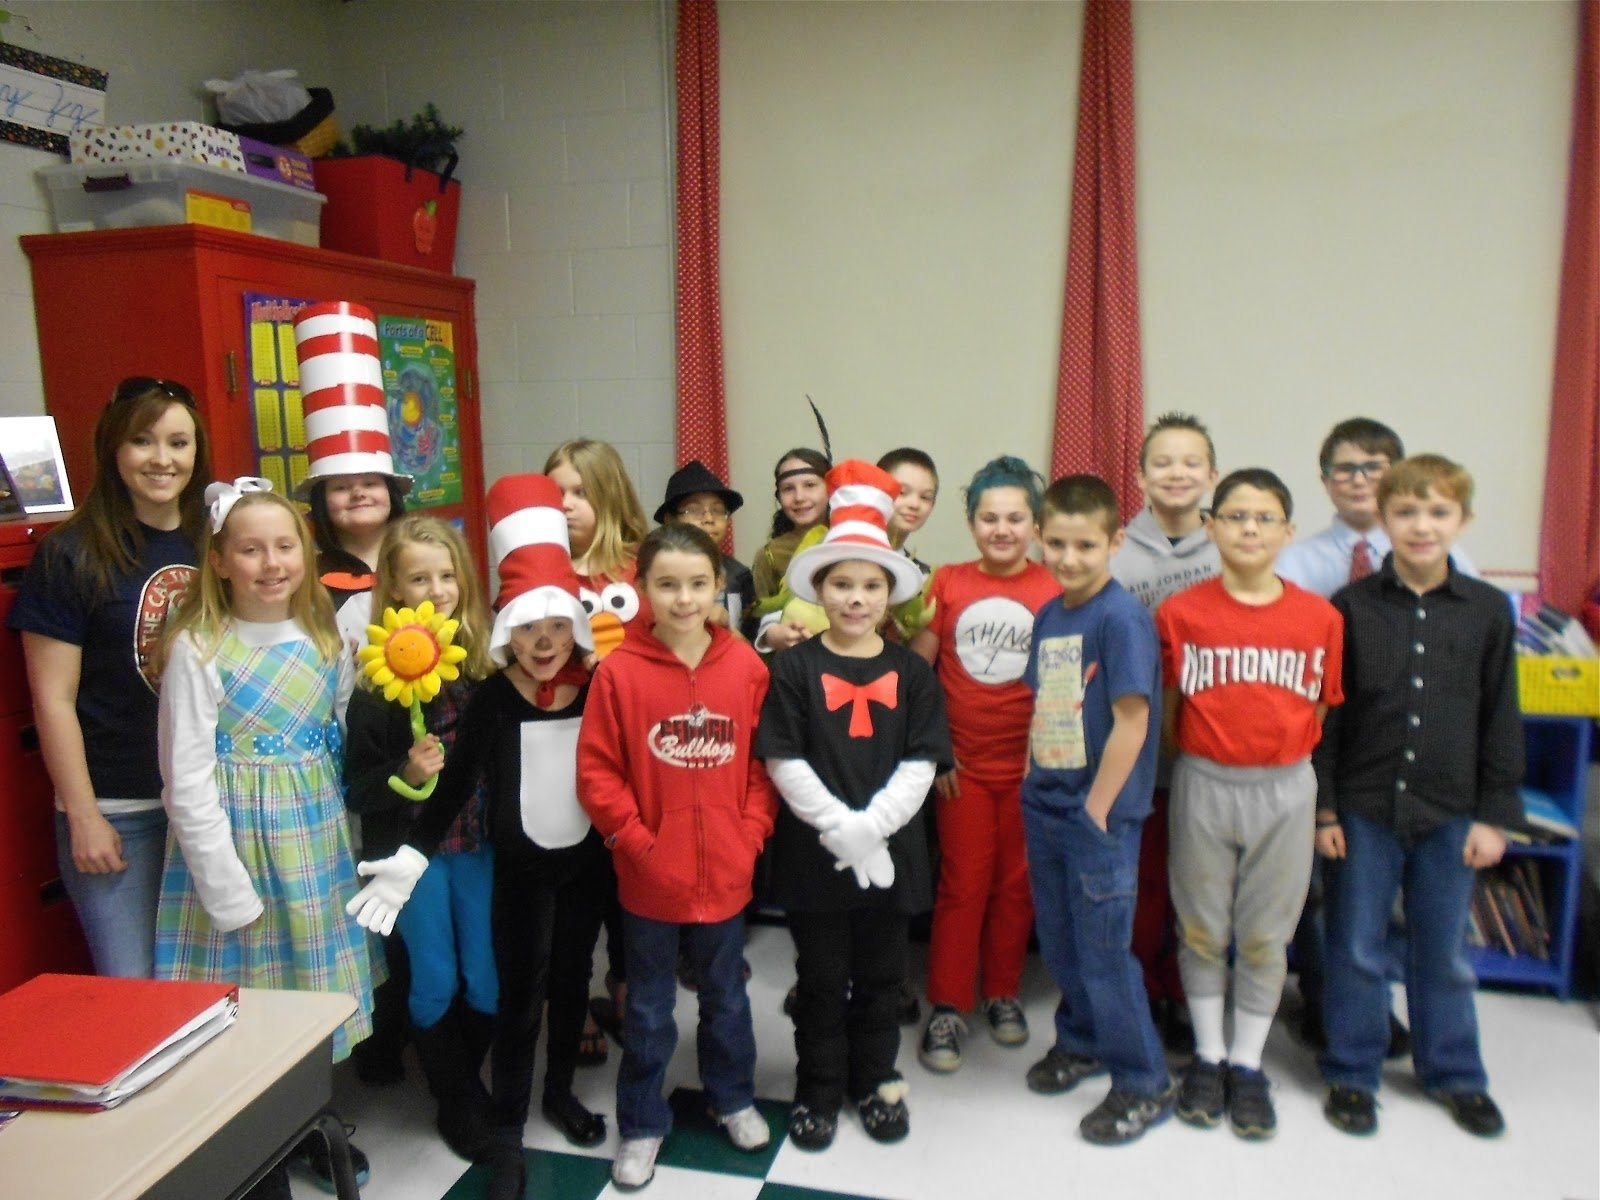 10 Best Dr Seuss Characters Costumes Ideas mrs mcdonald039s 4th grade march 2013 dr seuss characters 1